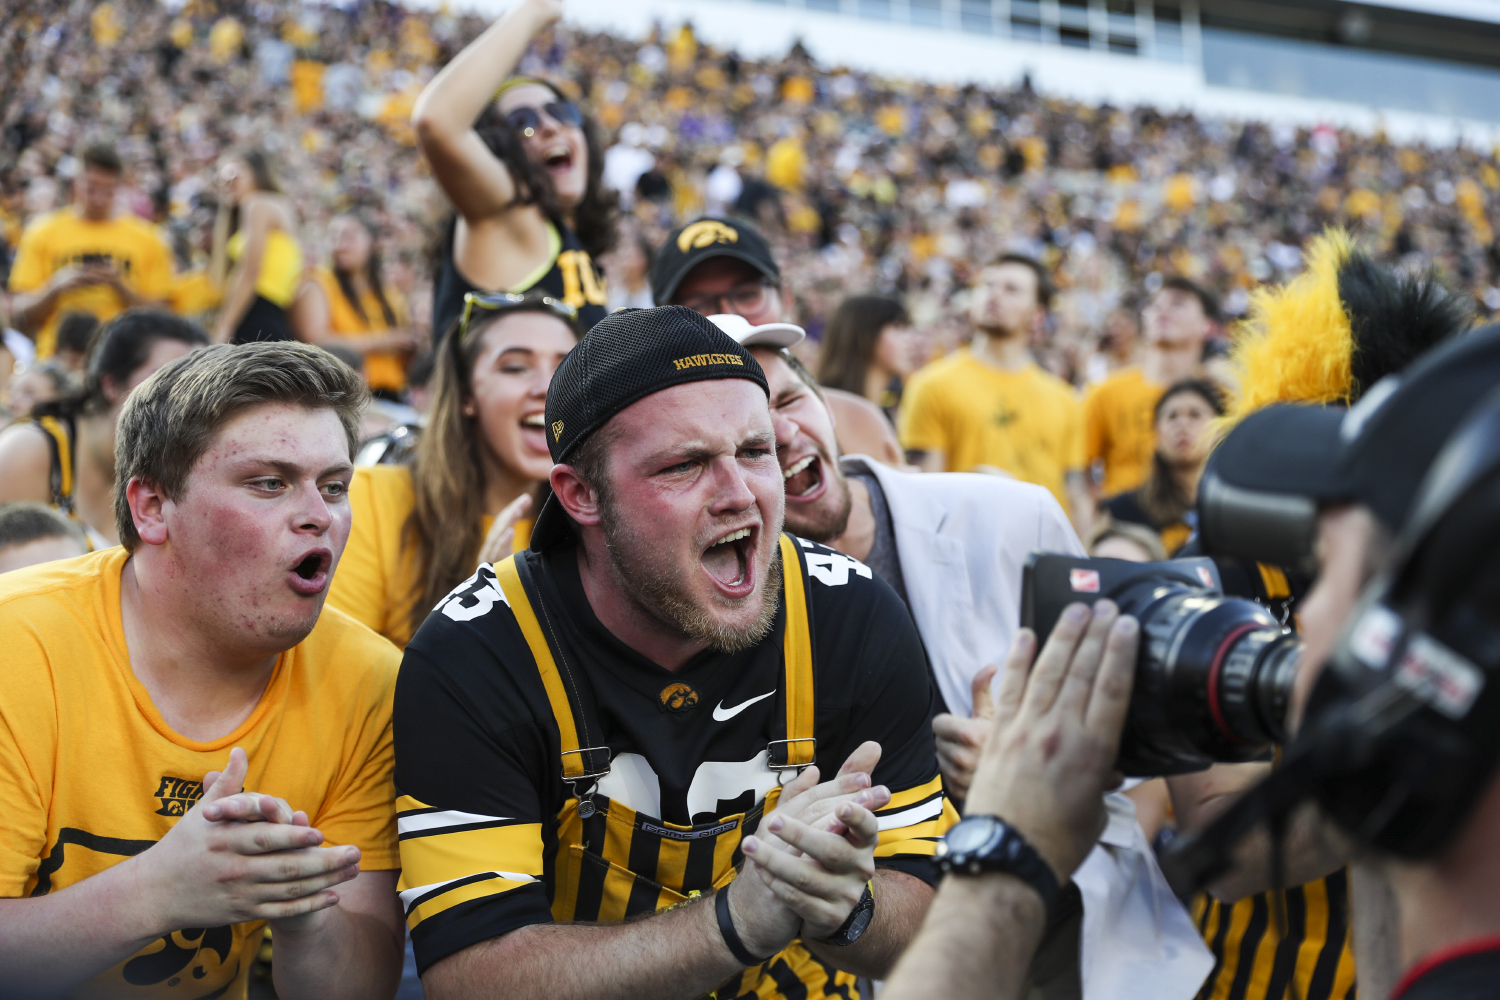 Fans cheer during the Iowa/UNI football game at Kinnick Stadium on Saturday, Sept. 15, 2018.